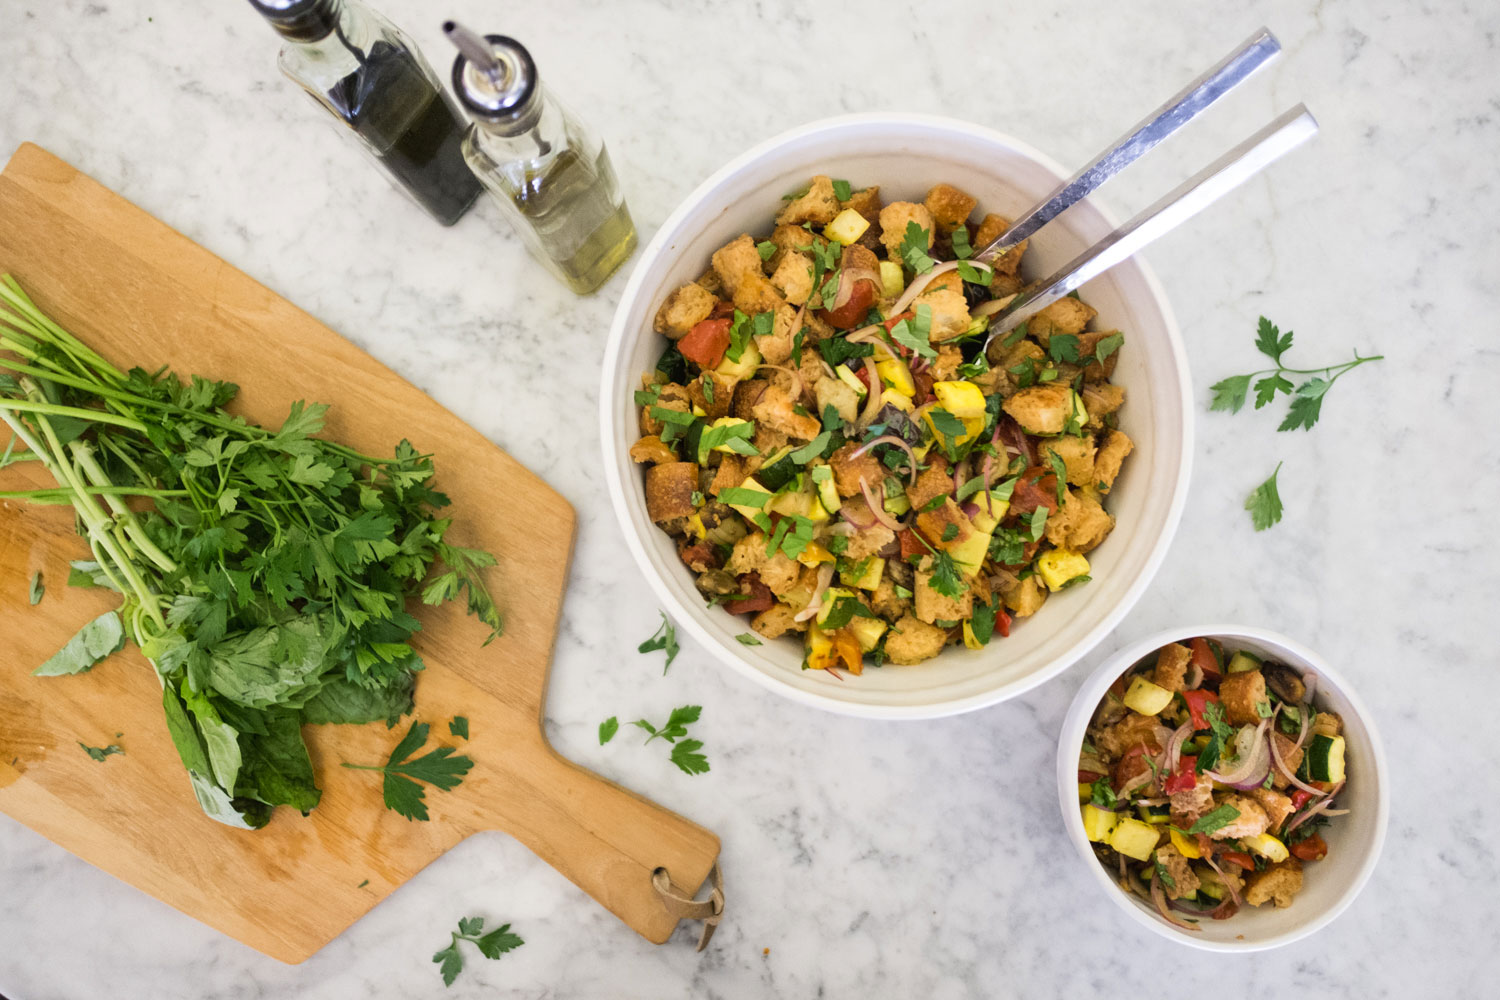 Roasted Vegetable Panzanella Salad